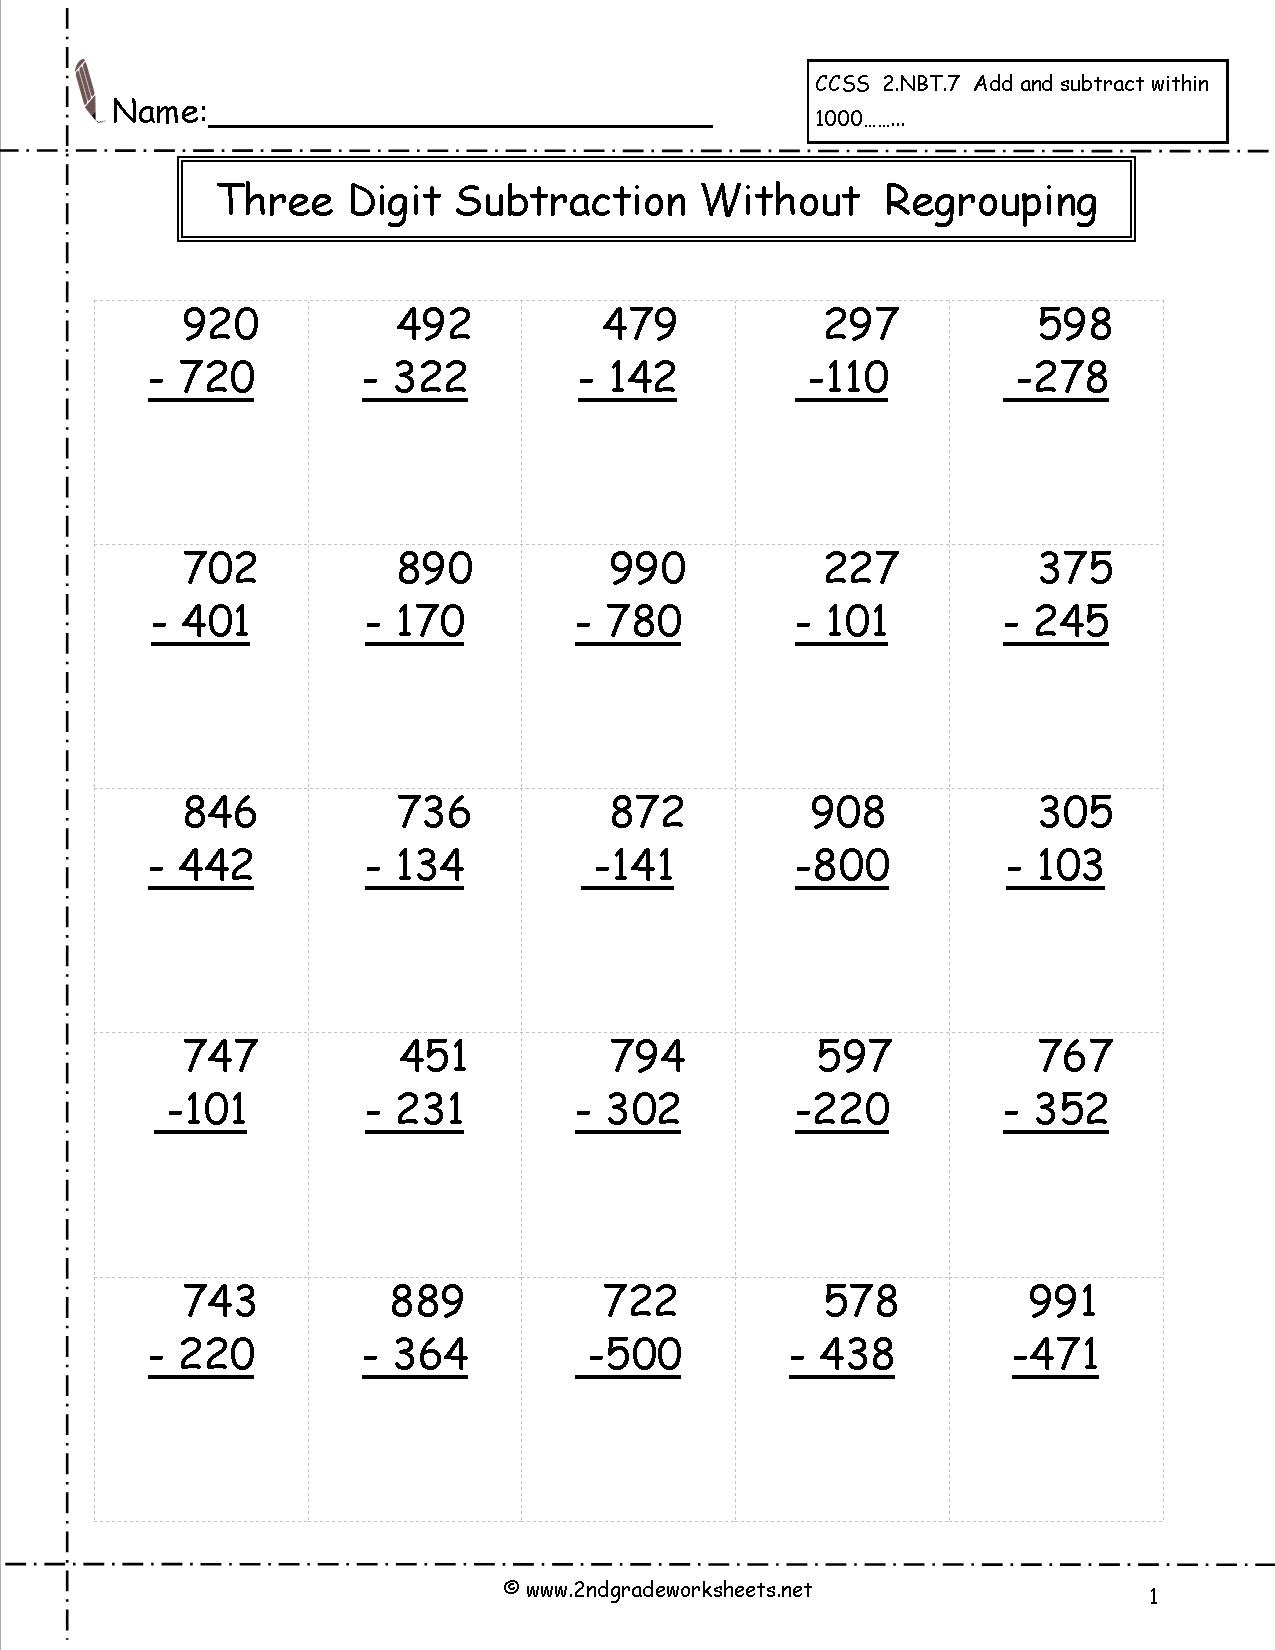 Free Printable 3 Digit Subtraction With Regrouping